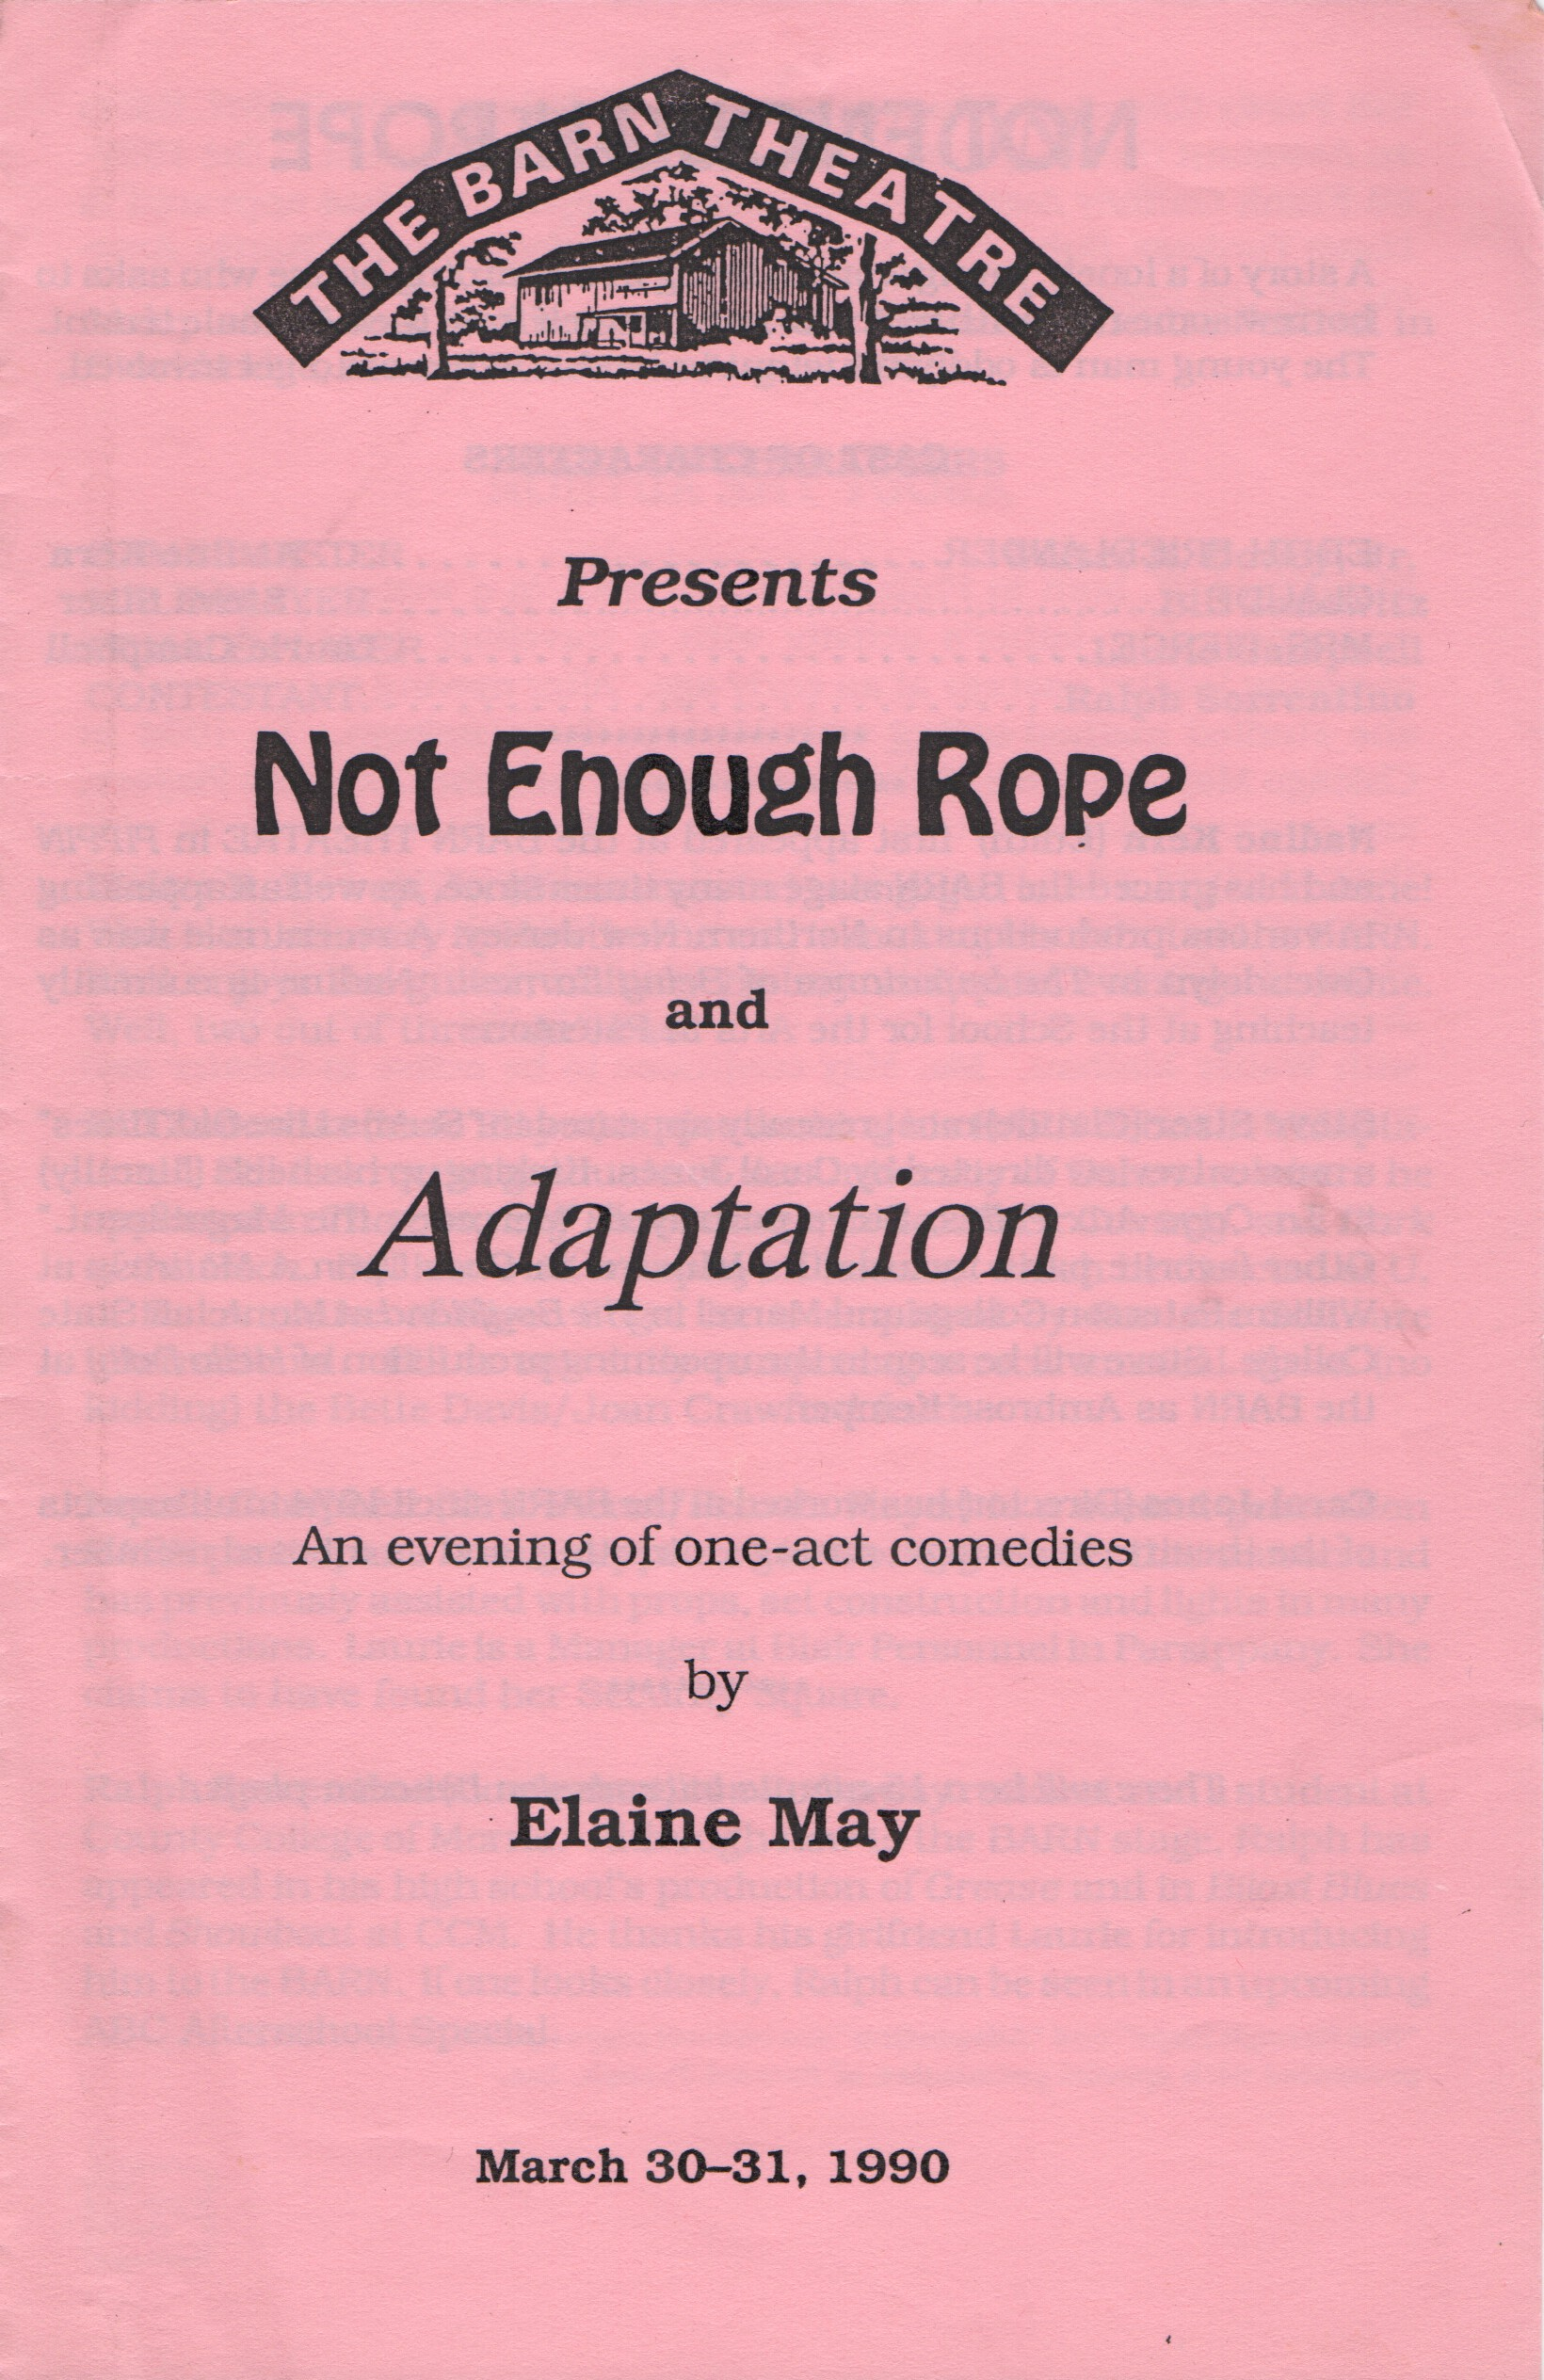 Program Cover for Not Enough Rope / Adaptation